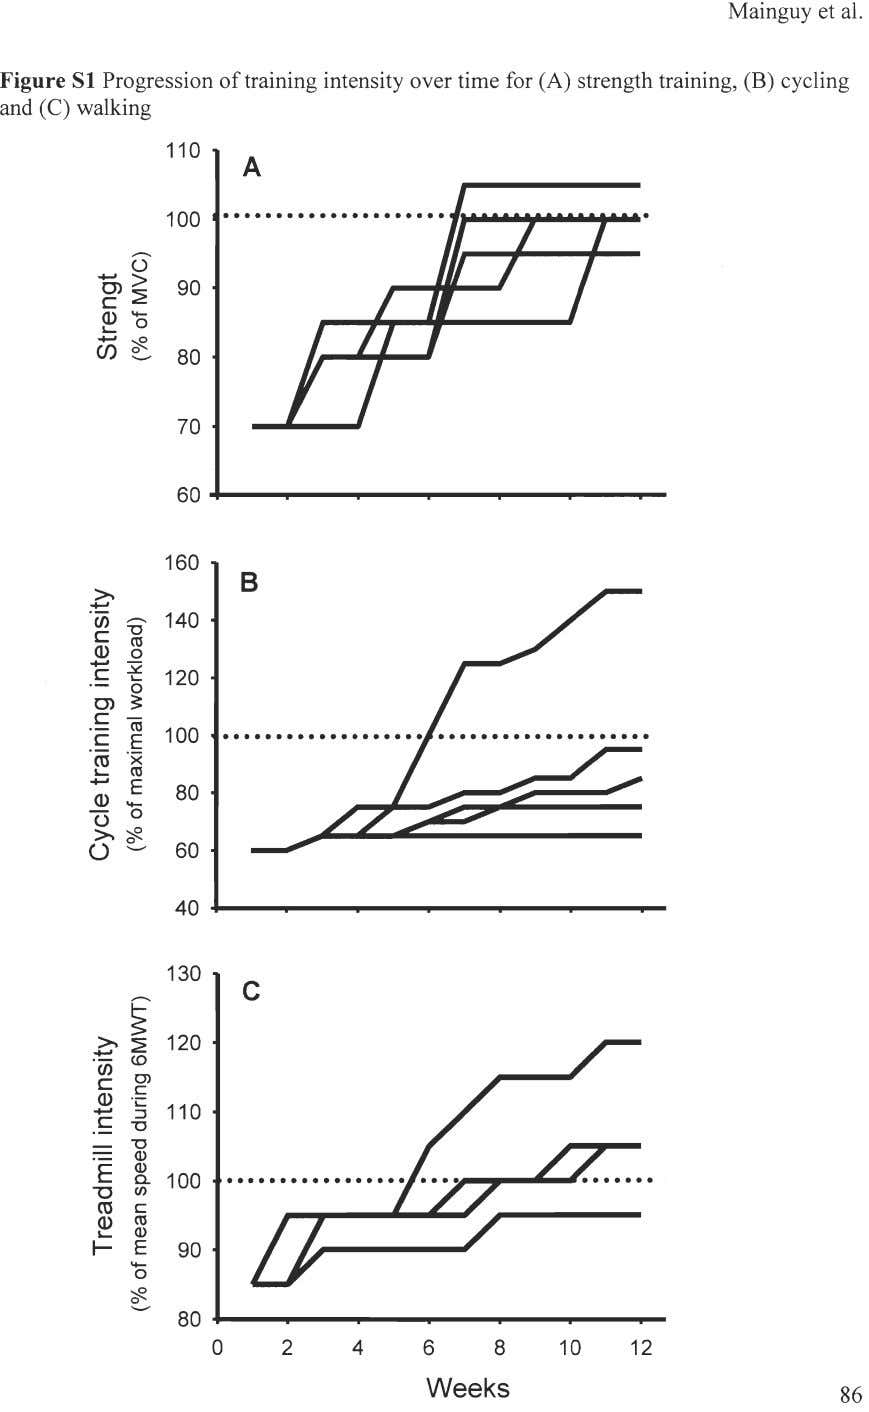 Mainguy et al. Figure SI Progression of training intensity over time for (A) strength training,